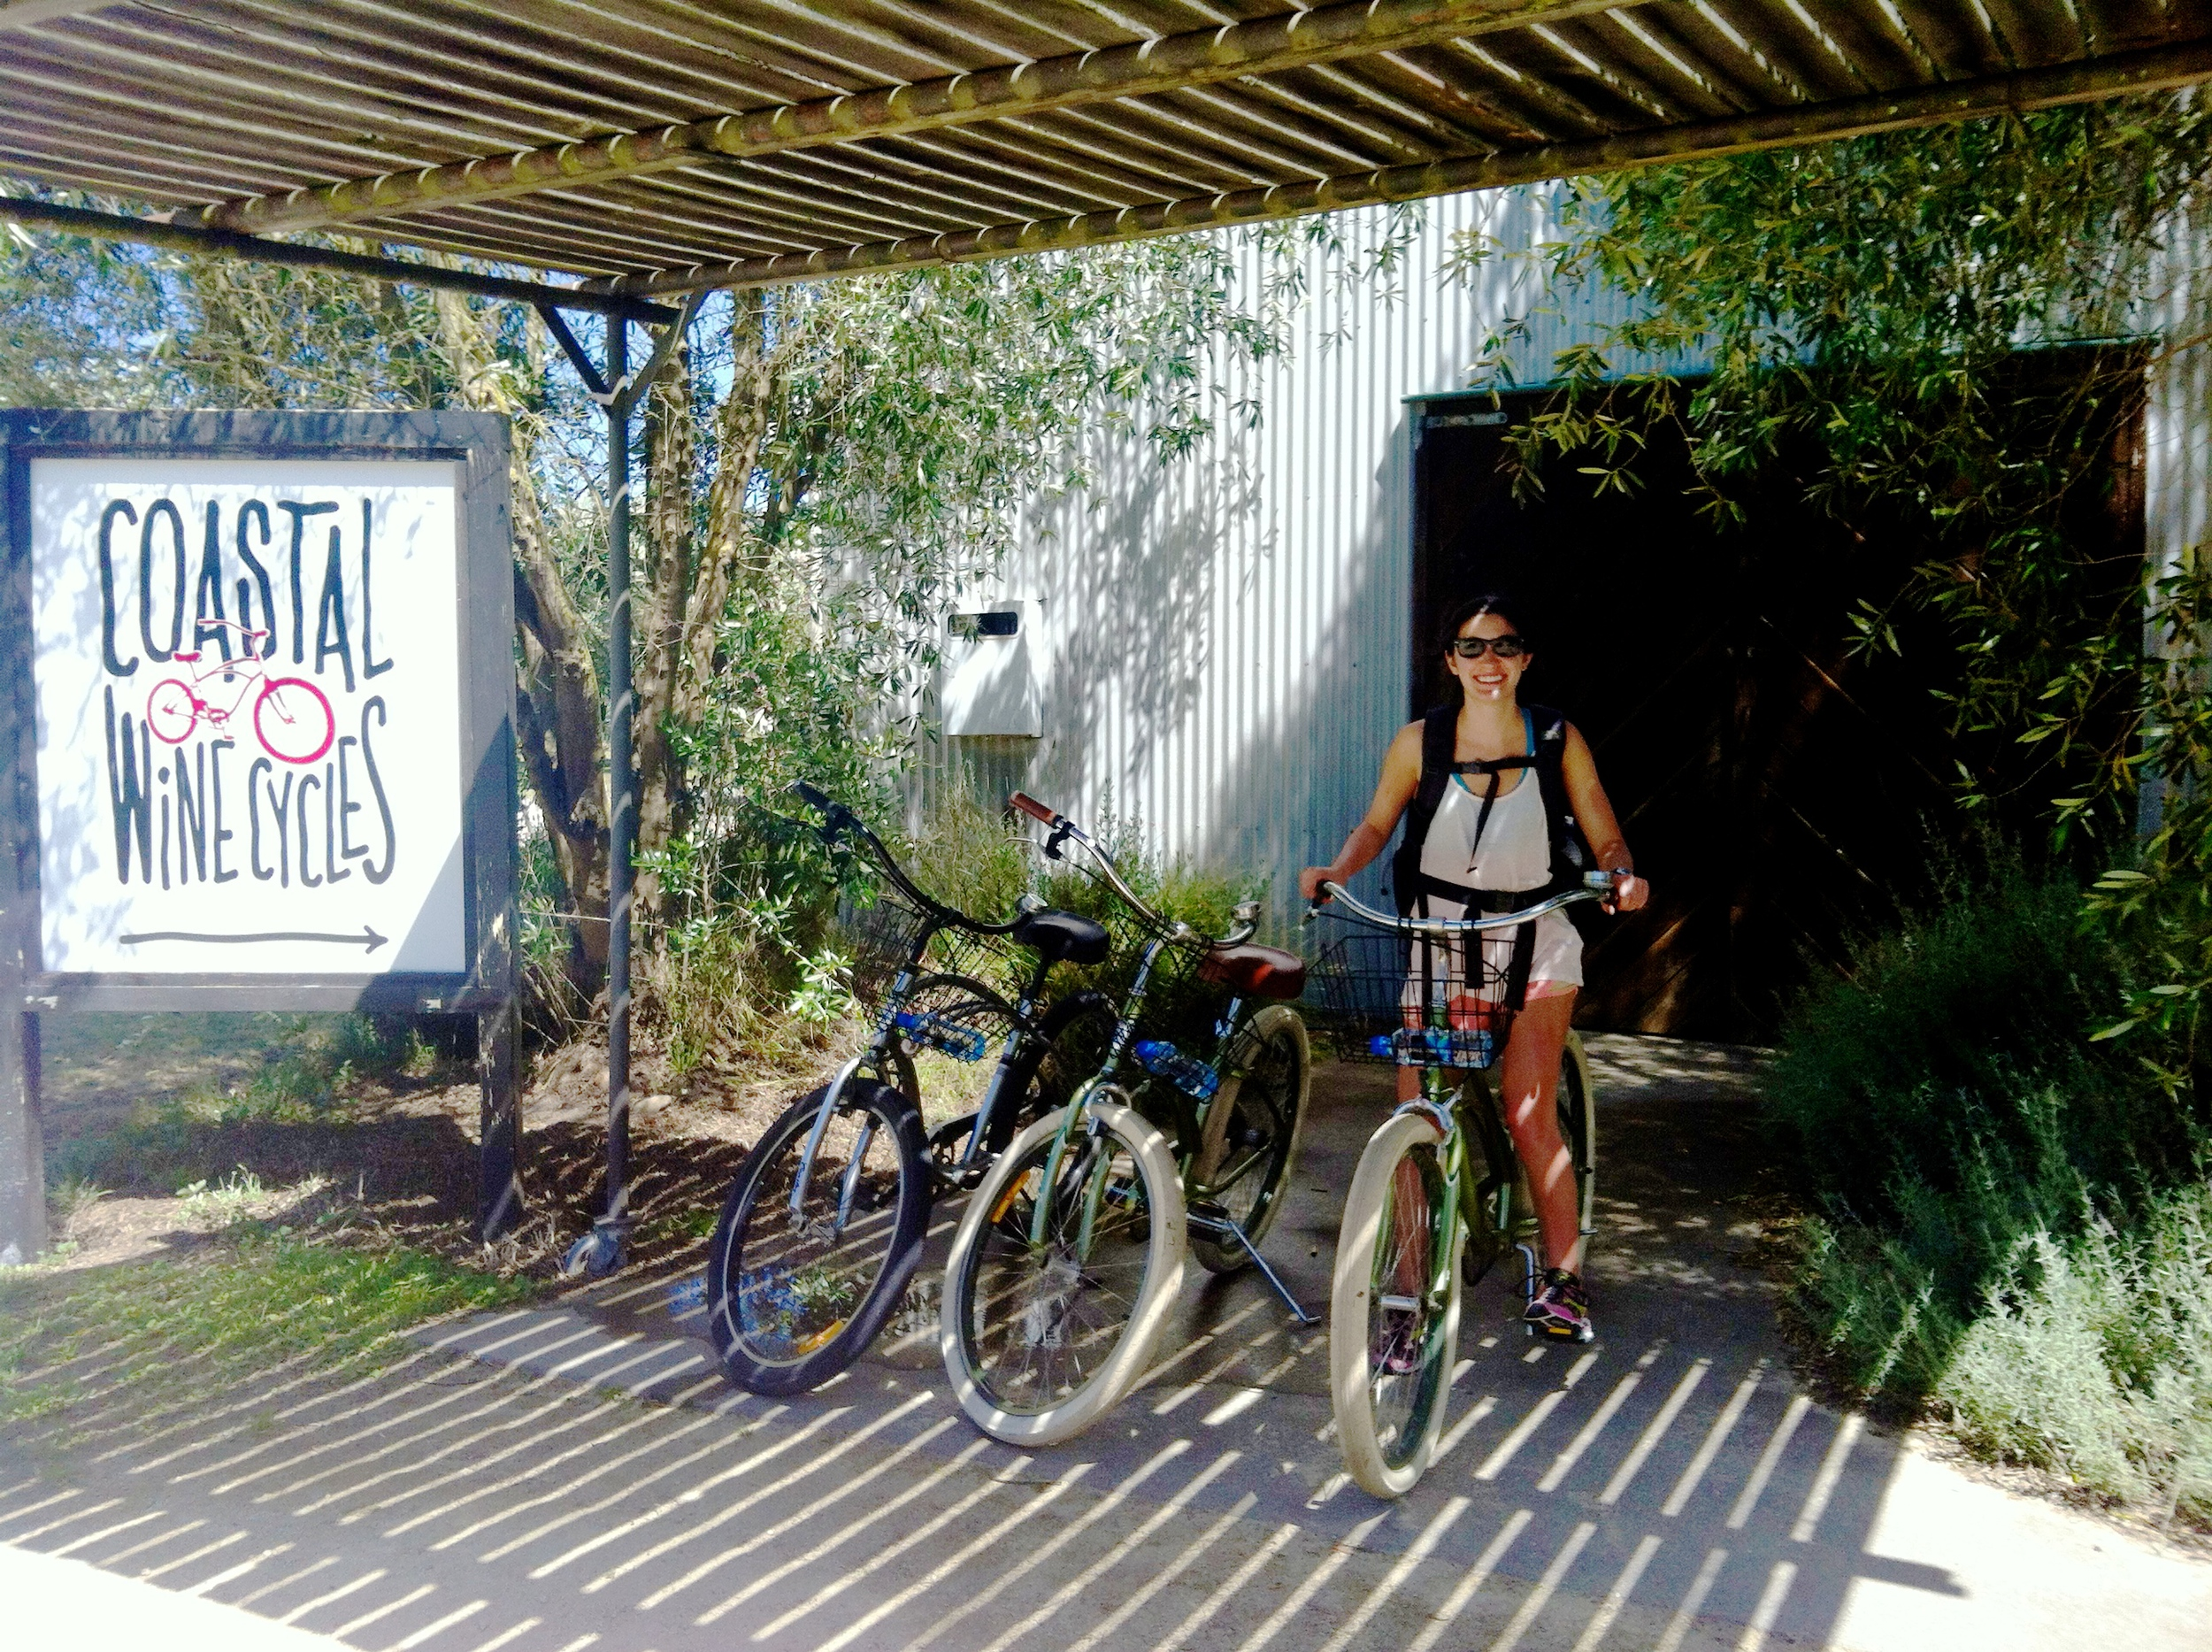 Collecting our bikes at Coastal Wine Cycles.